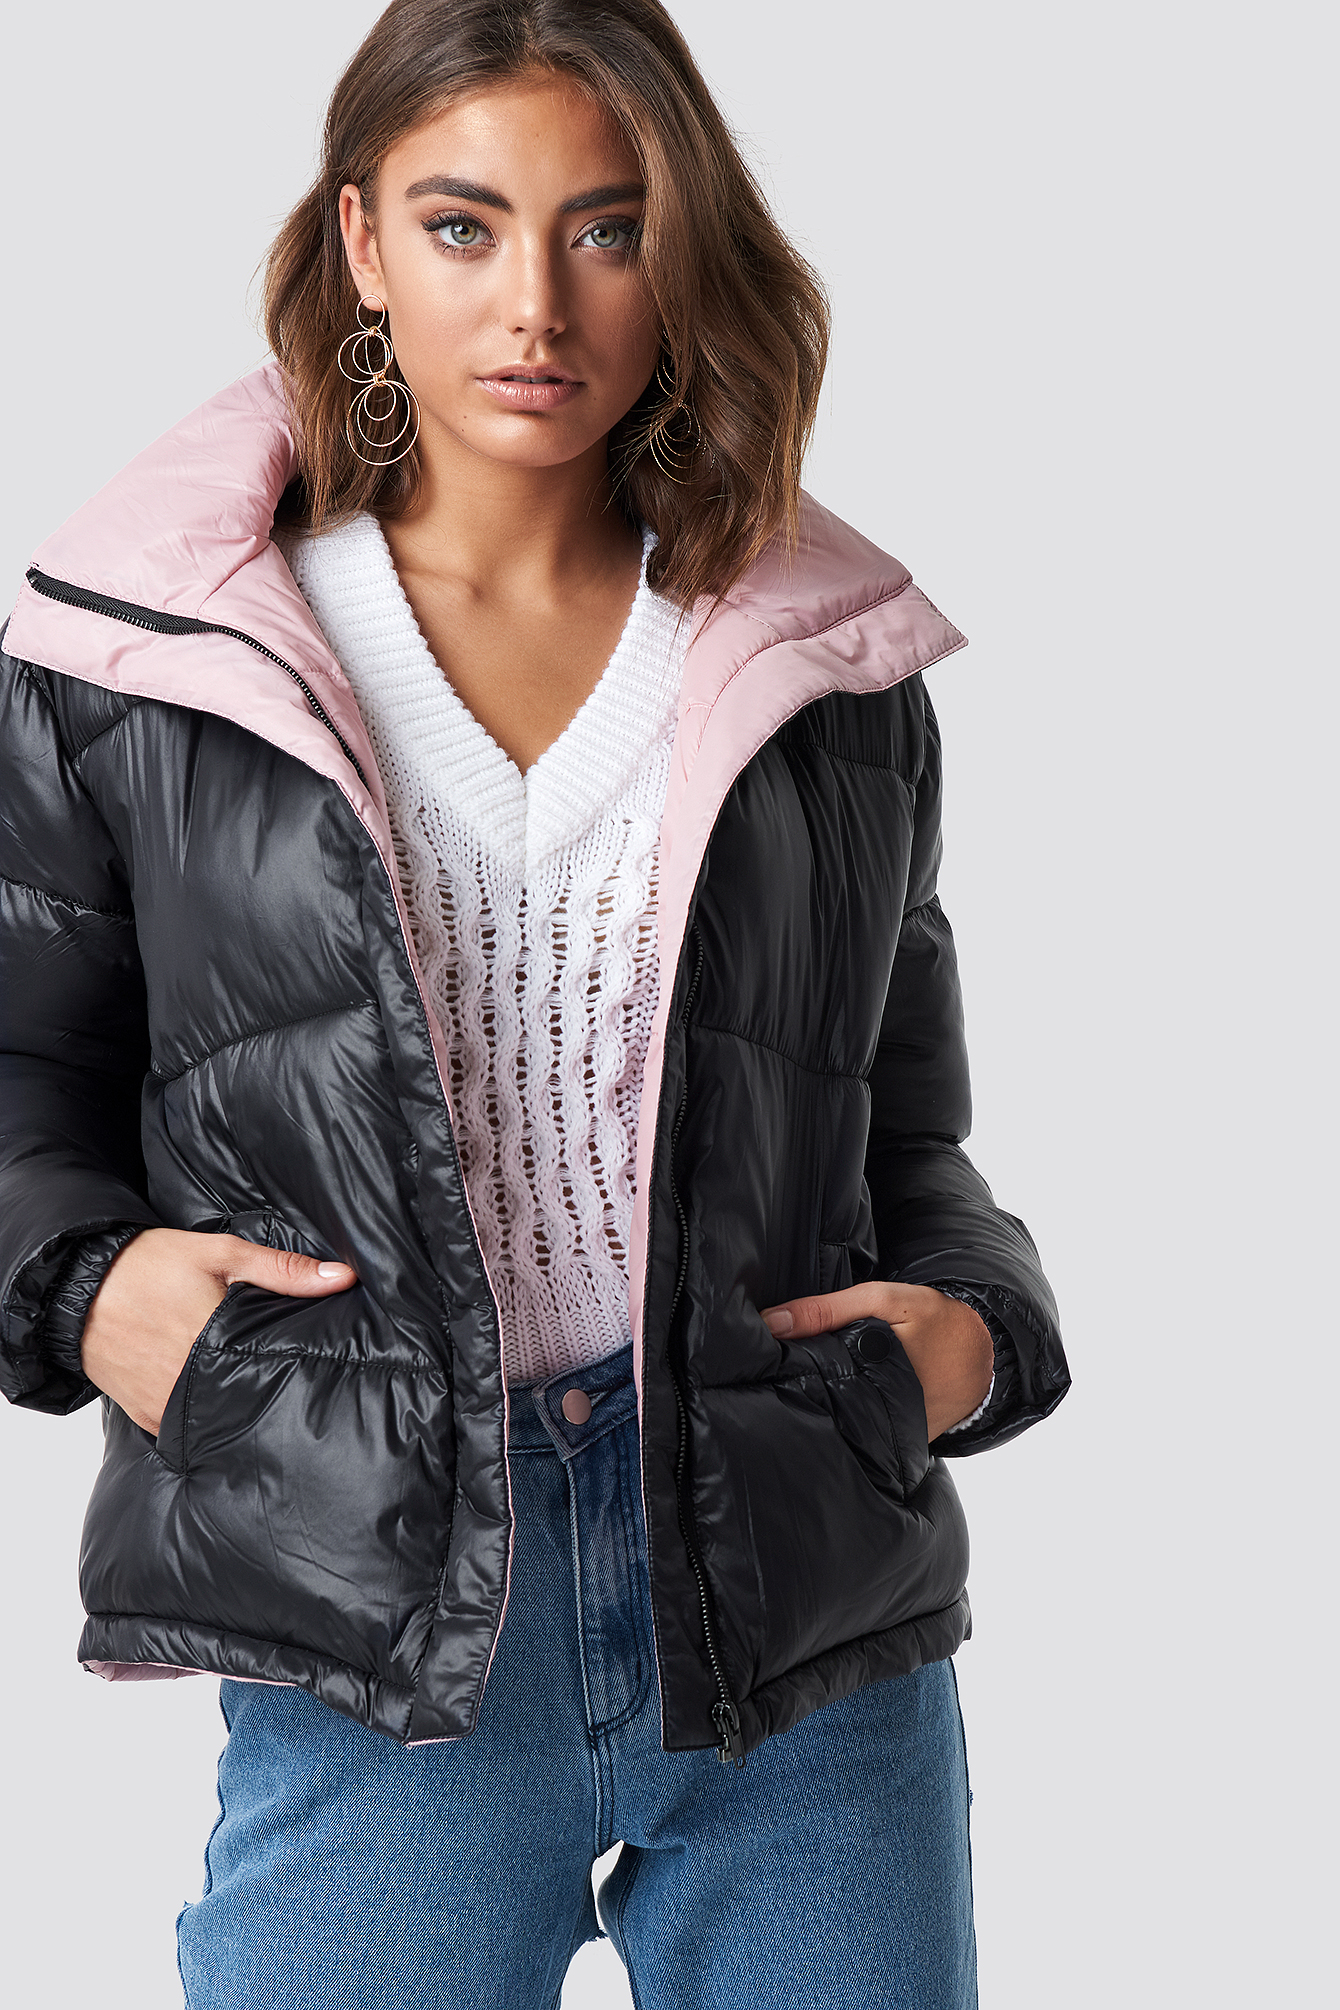 luisa lion x na-kd -  Two Toned Puffer Jacket - Black,Pink